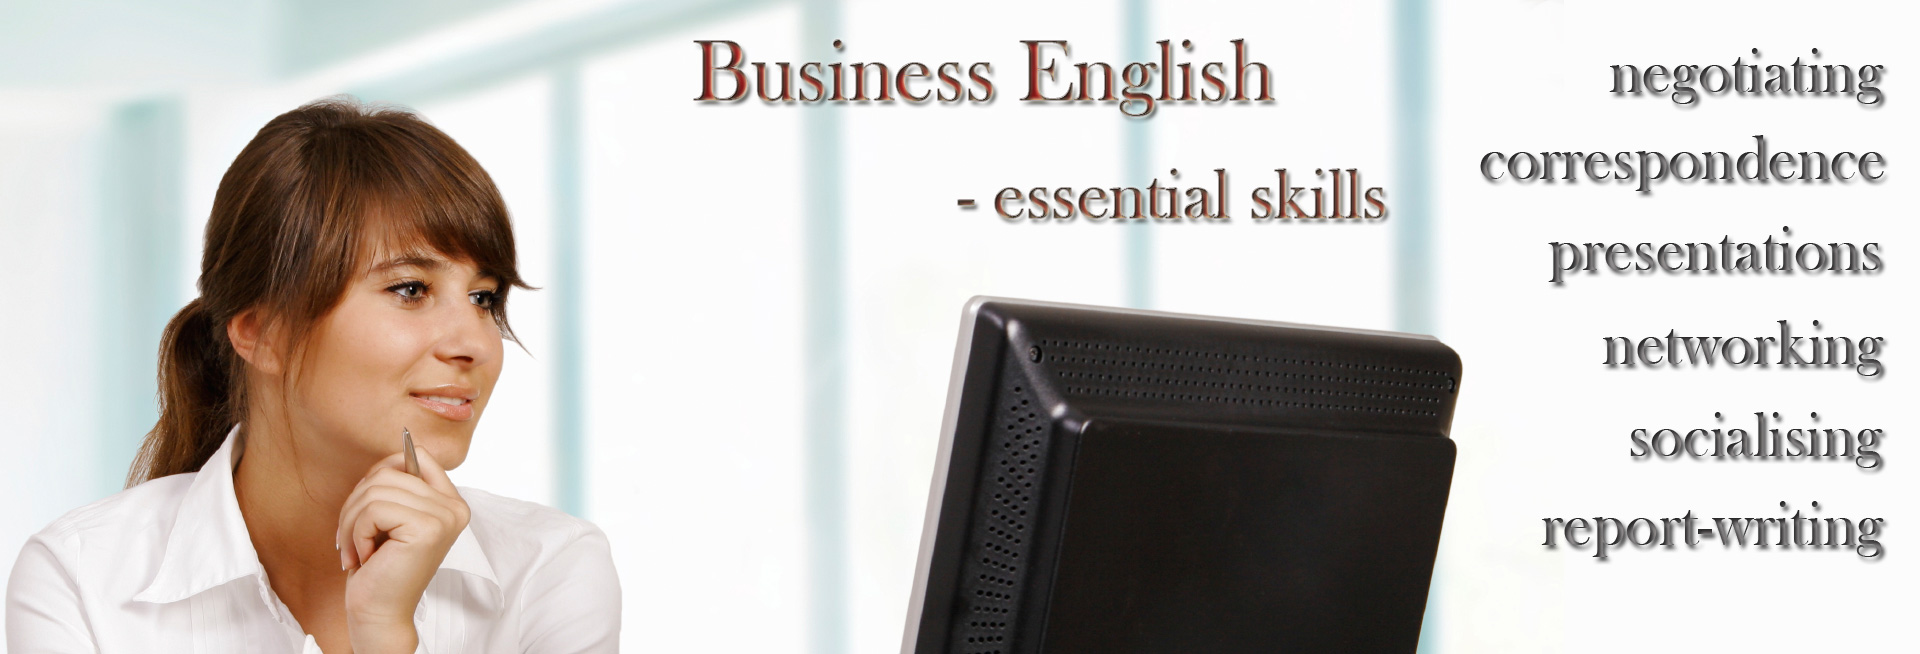 Business English is an essential skill